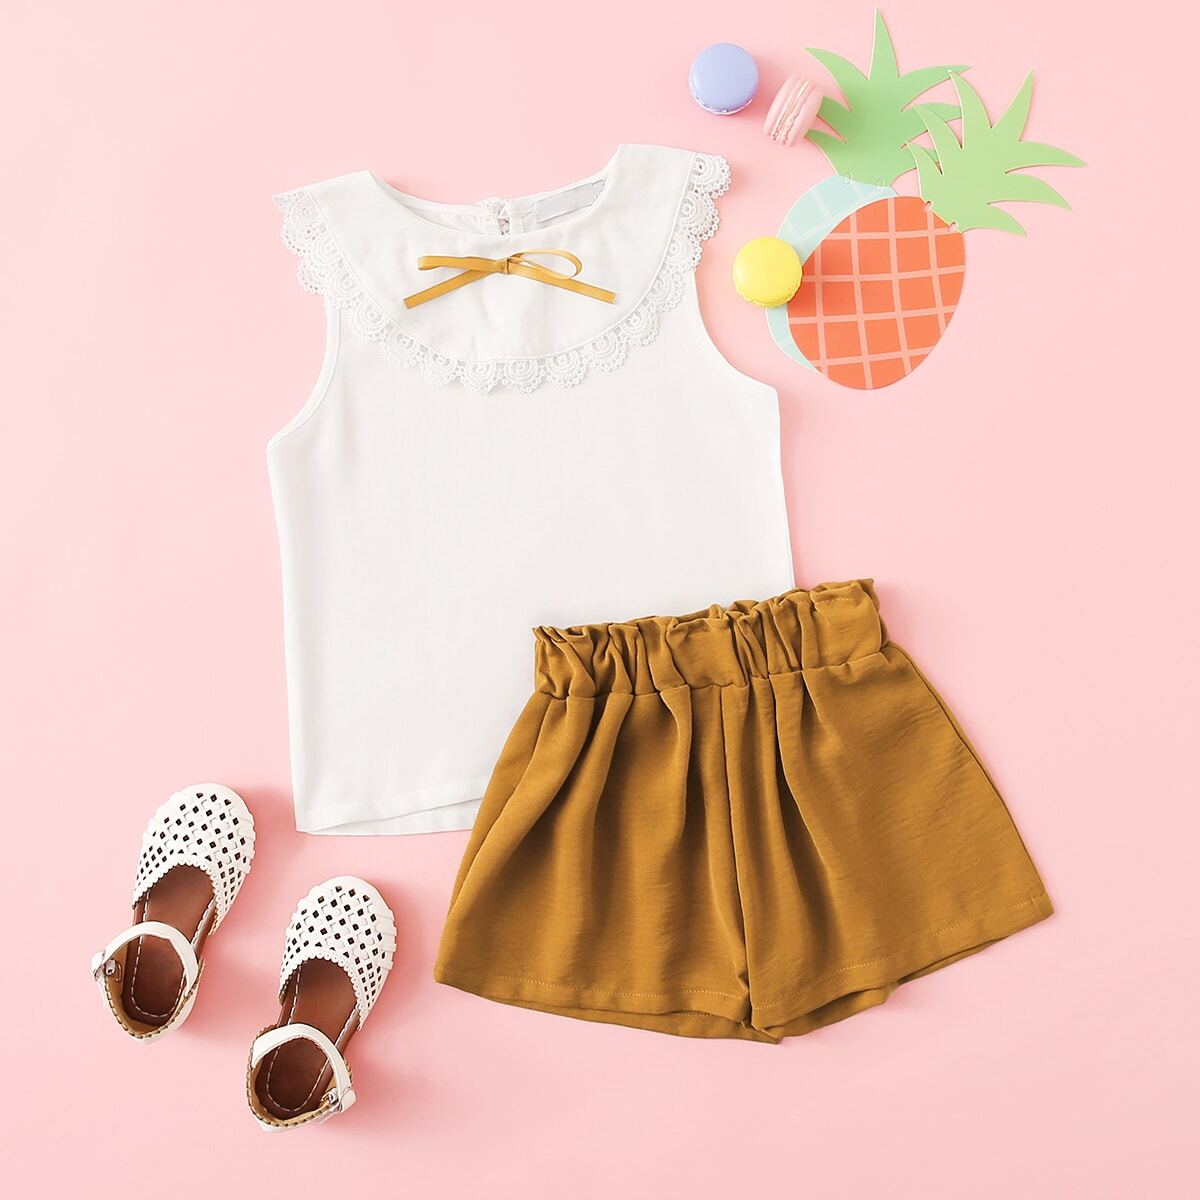 Toddler Girls Contrast Lace Top With Shorts